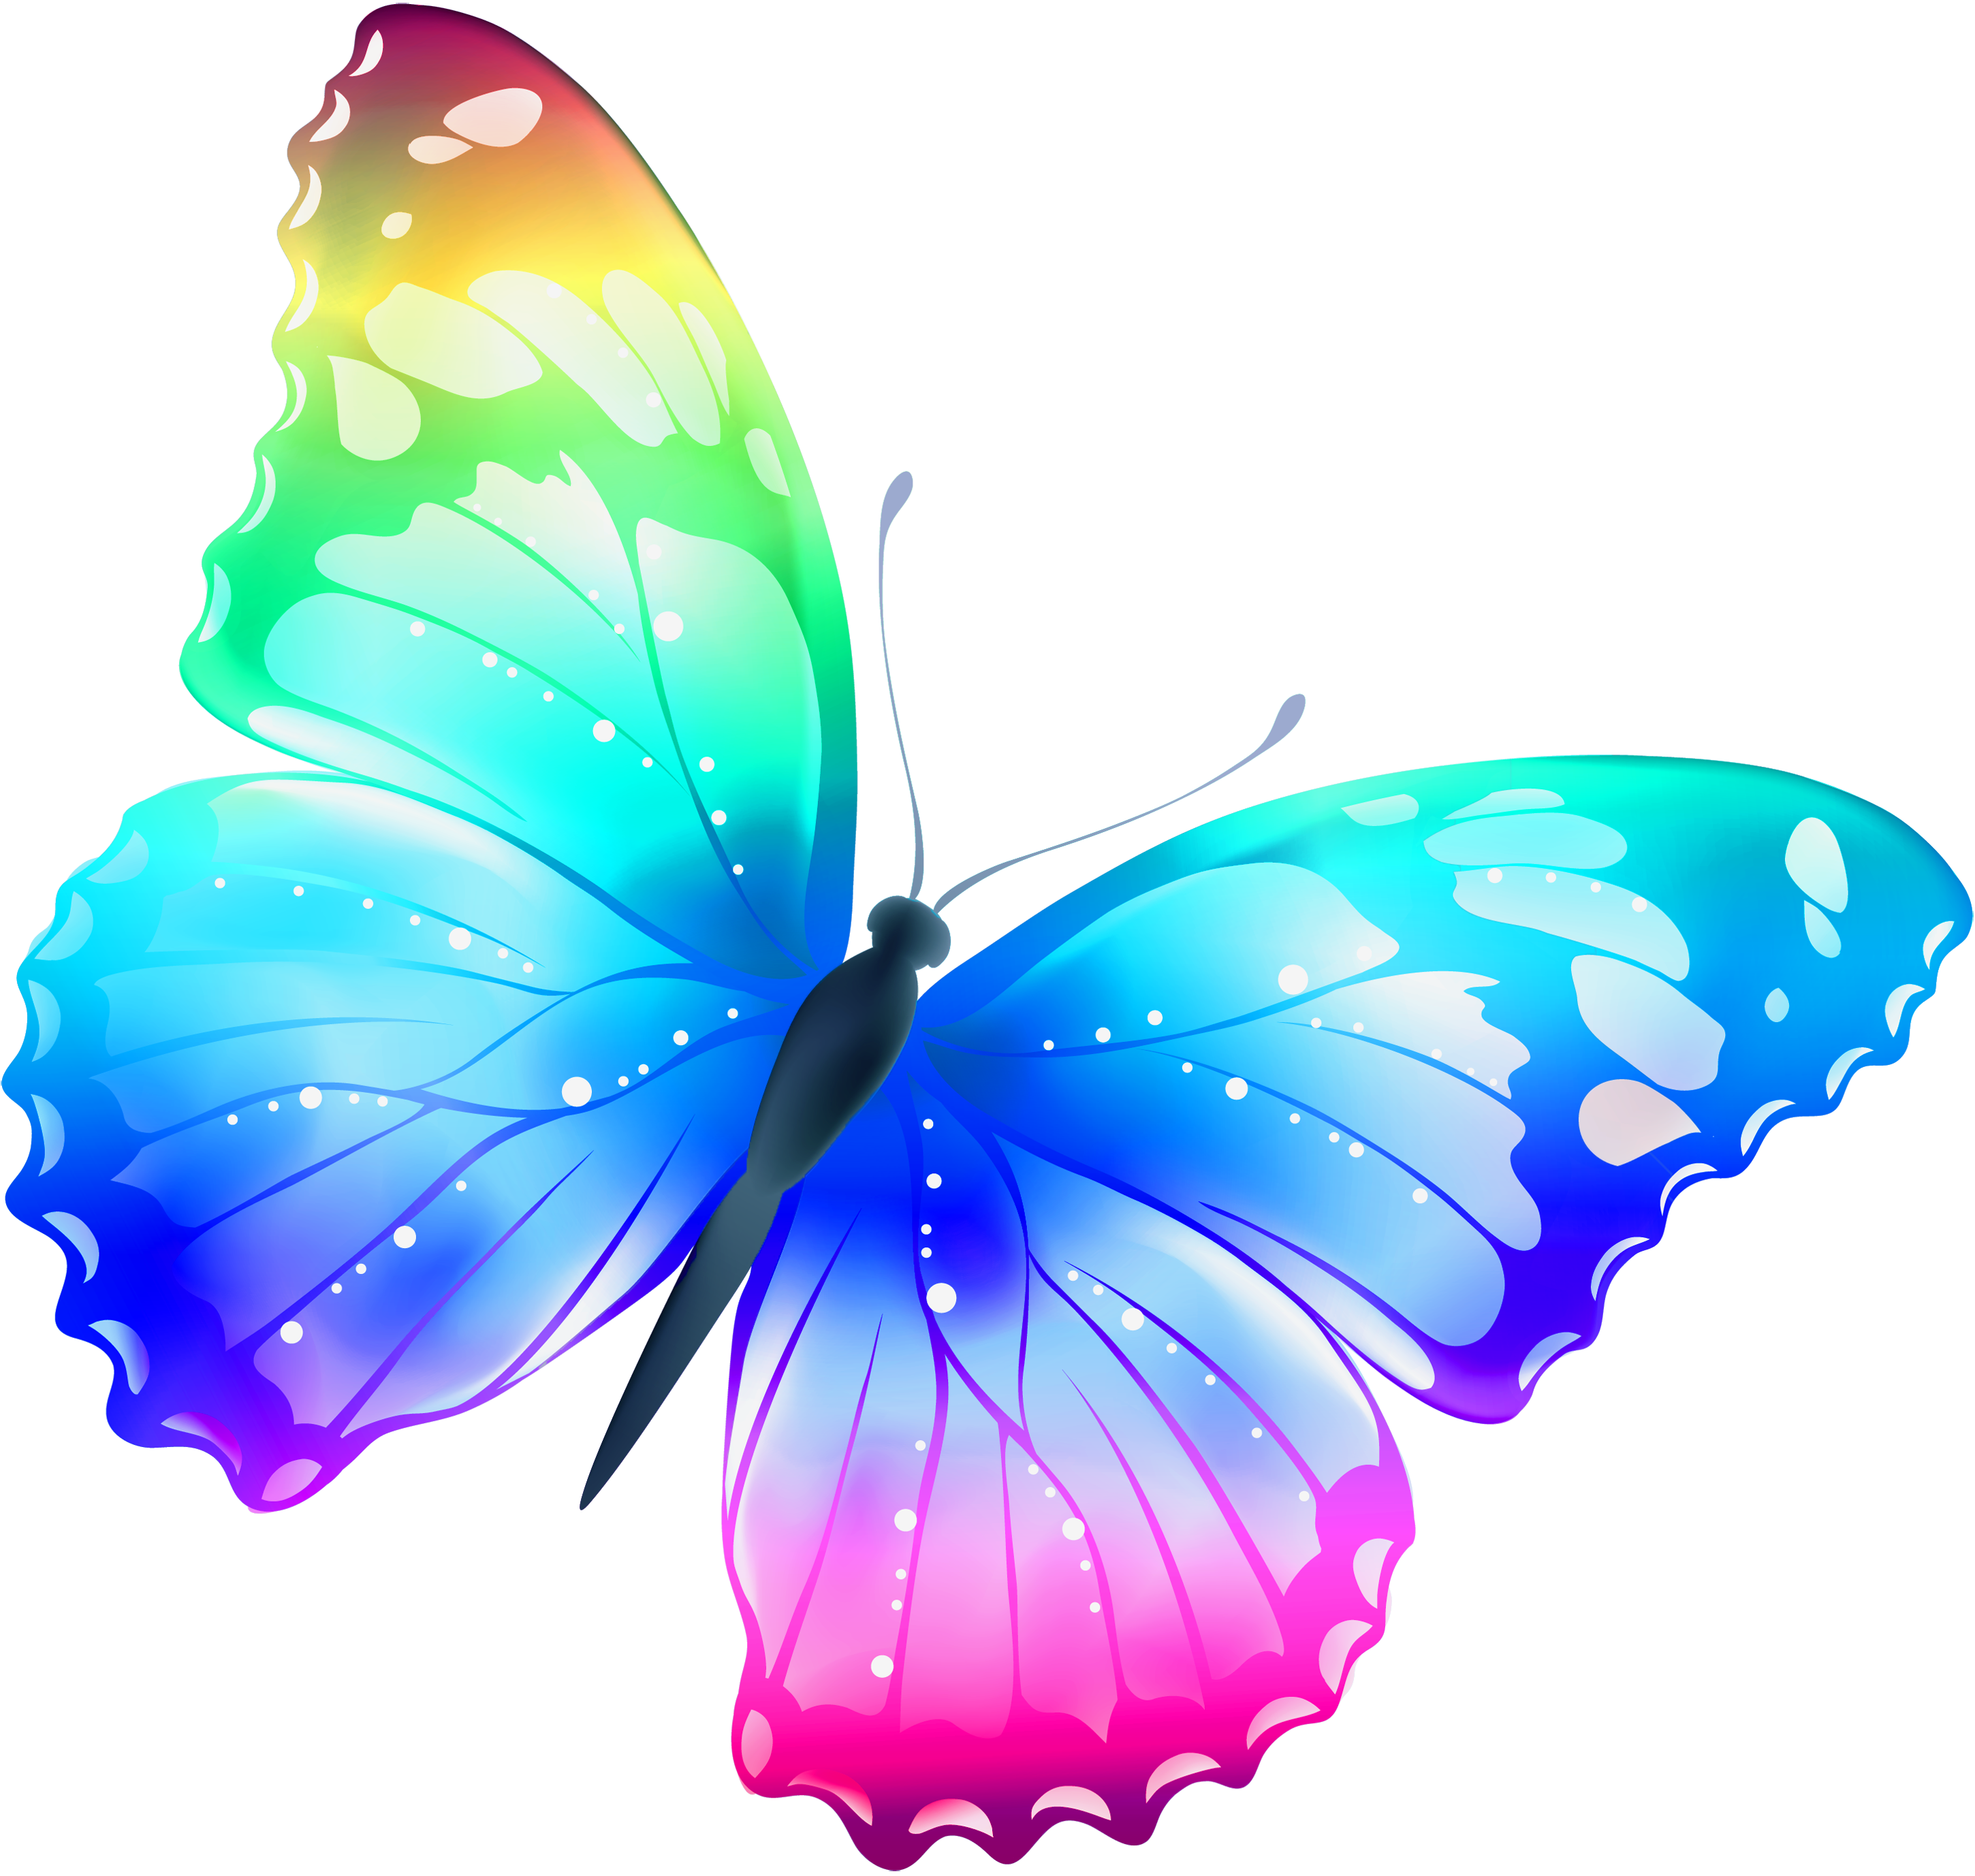 Butterfly clip art. Free pictures of butterflies